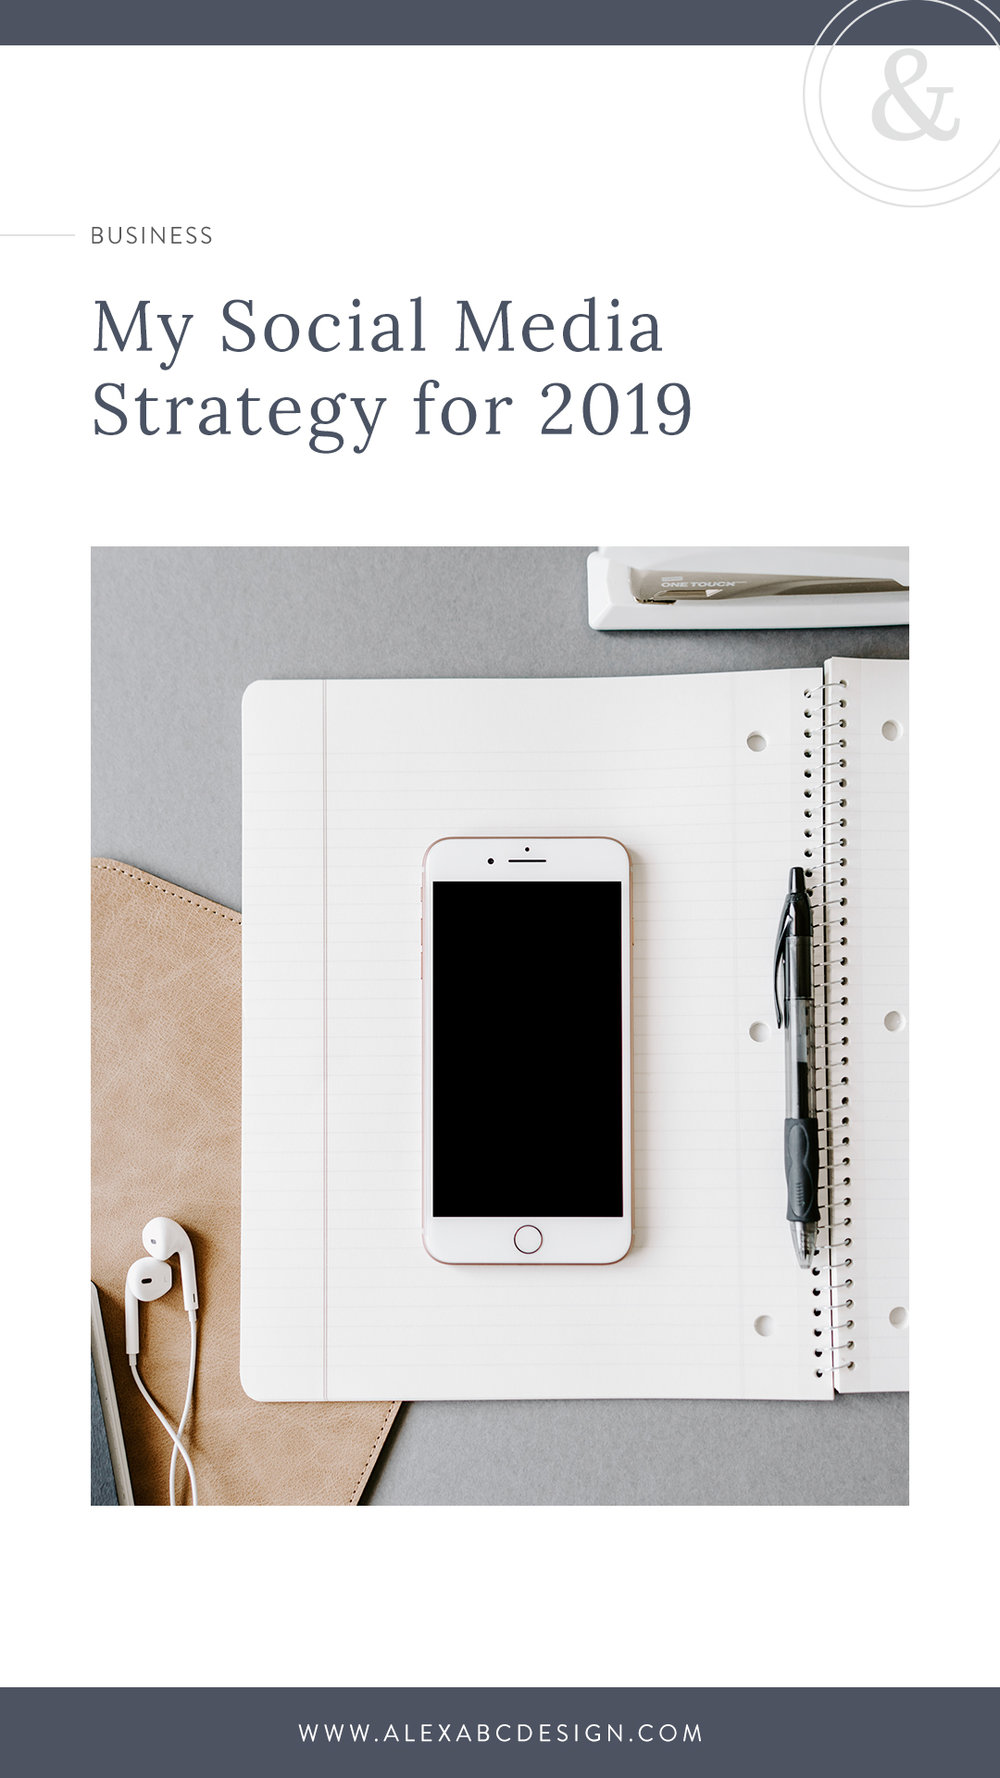 "My Social Media Strategy for 2019 | At the end of 2018, I was burnt out as far as social media goes. At some point, I had gotten caught up in posting just so I could check it off my list & mindlessly scrolling through my feed, making sure to double-tap a couple times for ""engagement."" Well no wonder social media marketing wasn't working for me! In 2019, I'm taking a different approach."